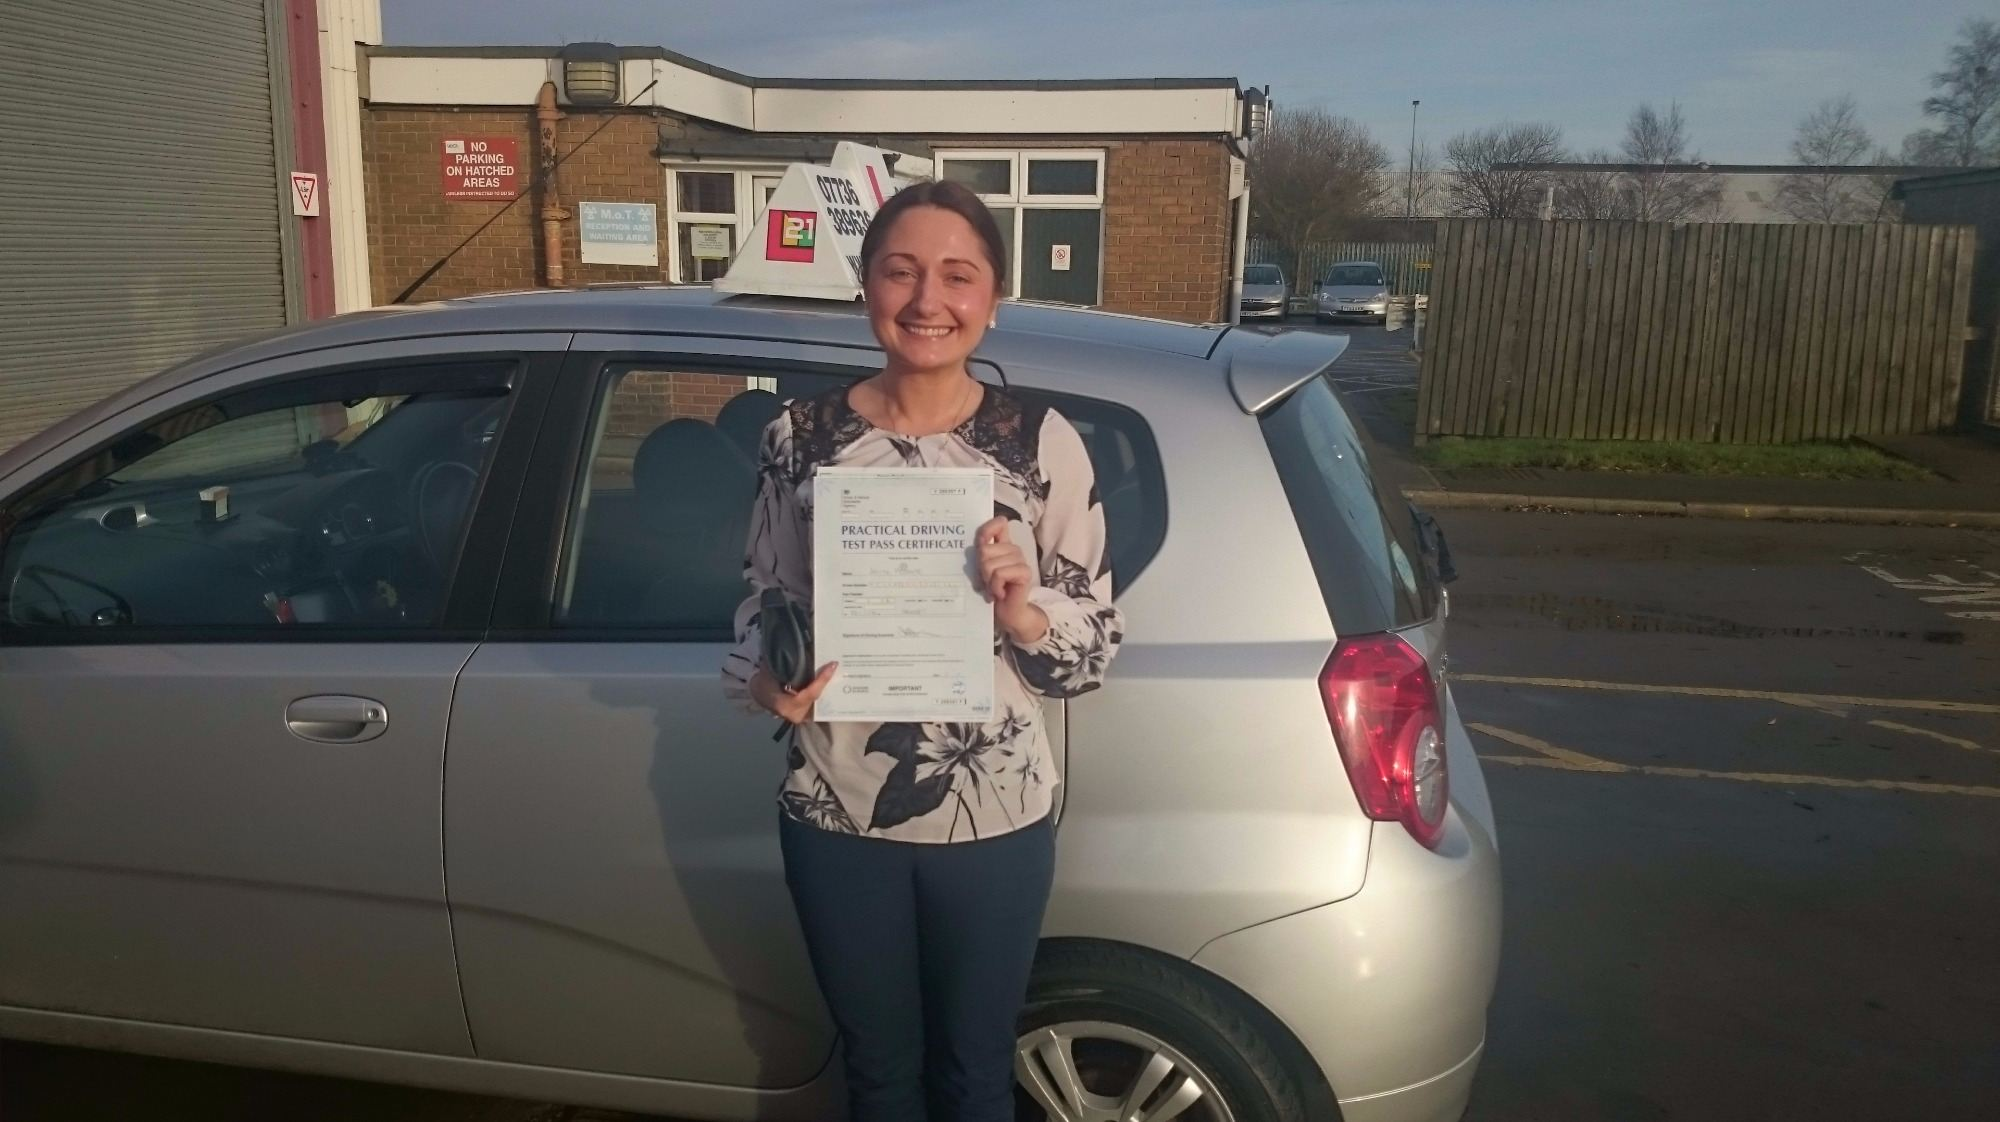 Jolita Meskaite took her driving lessons and passes her test in Grimsby with 21st Century Driving